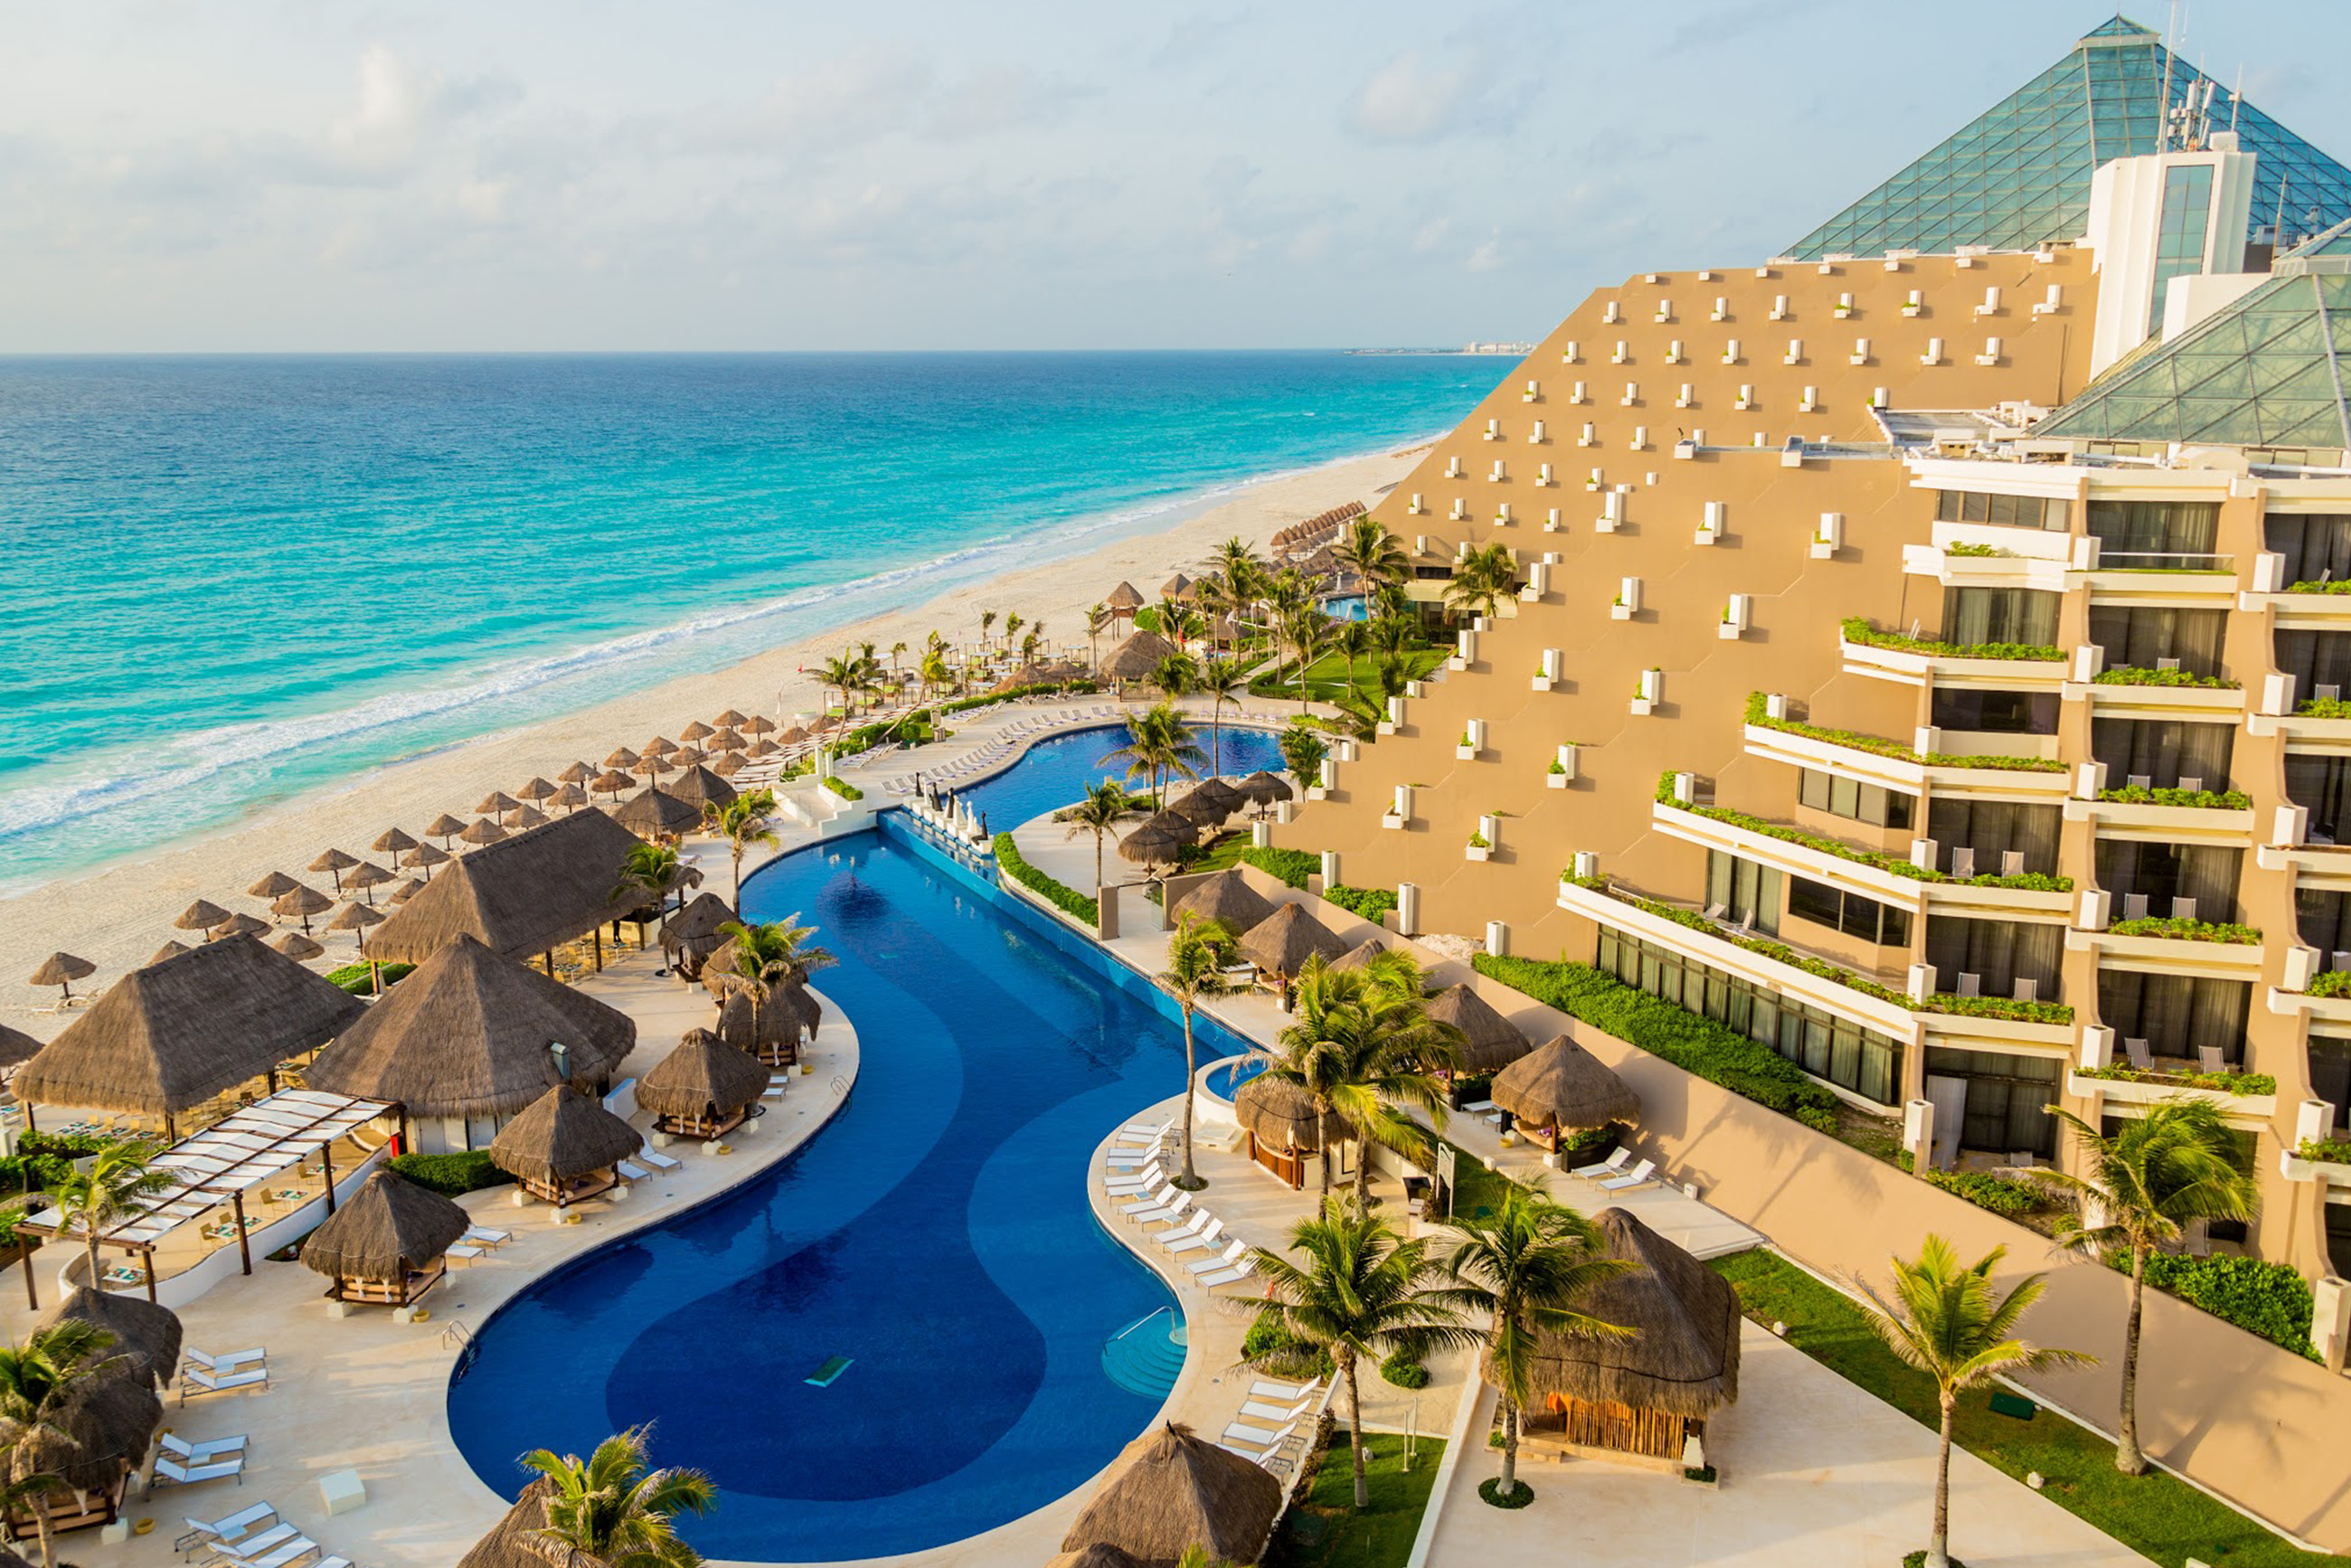 https://bubo.sk/uploads/galleries/7336/paradisus-cancun-5.jpg